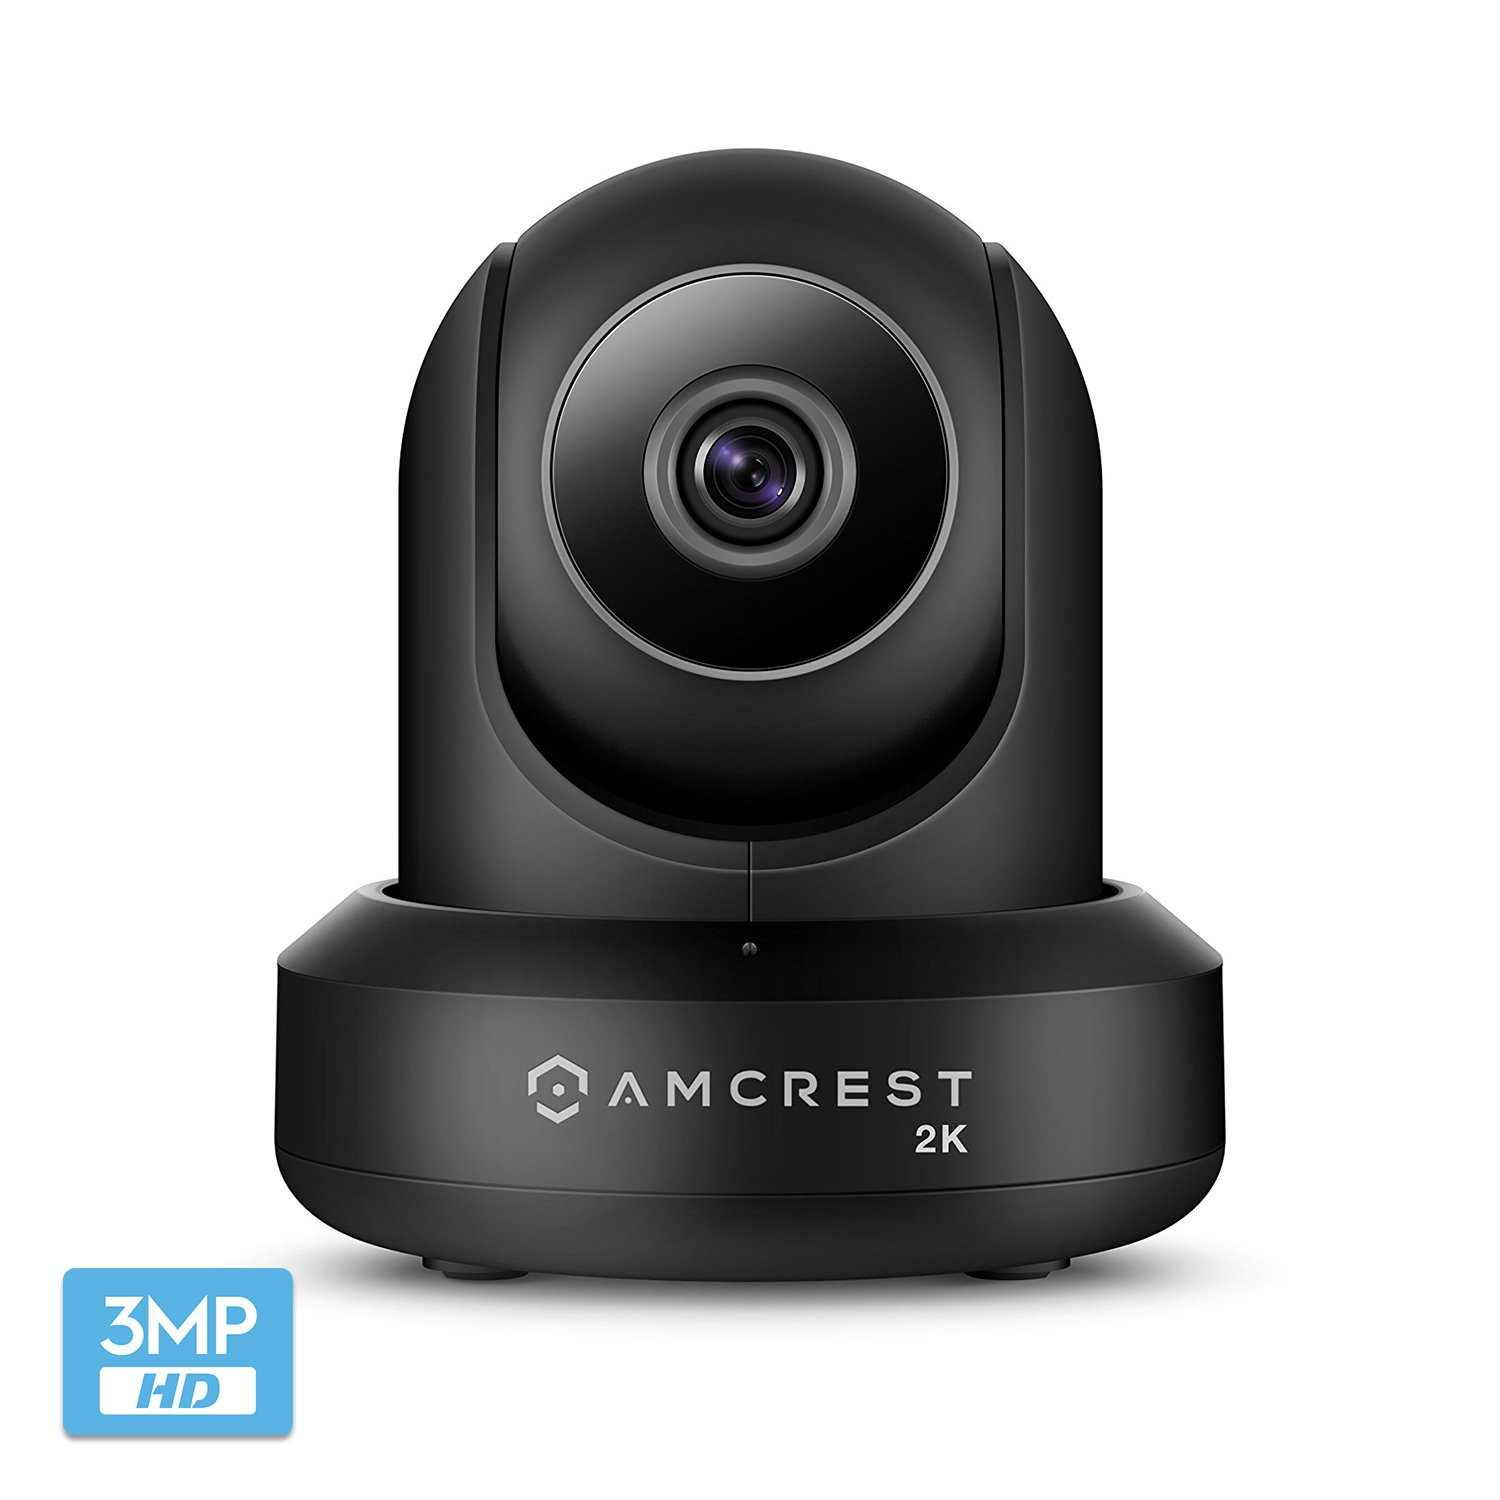 Amcrest UltraHD 2K WiFi Camera 3MP (2304TVL) Dualband 5ghz/2.4ghz Indoor Pan/Tilt Surveillance Wireless IP Camera, Home Video Security System with IR Night Vision, Two-Way Talk IP3M-941B (Black)